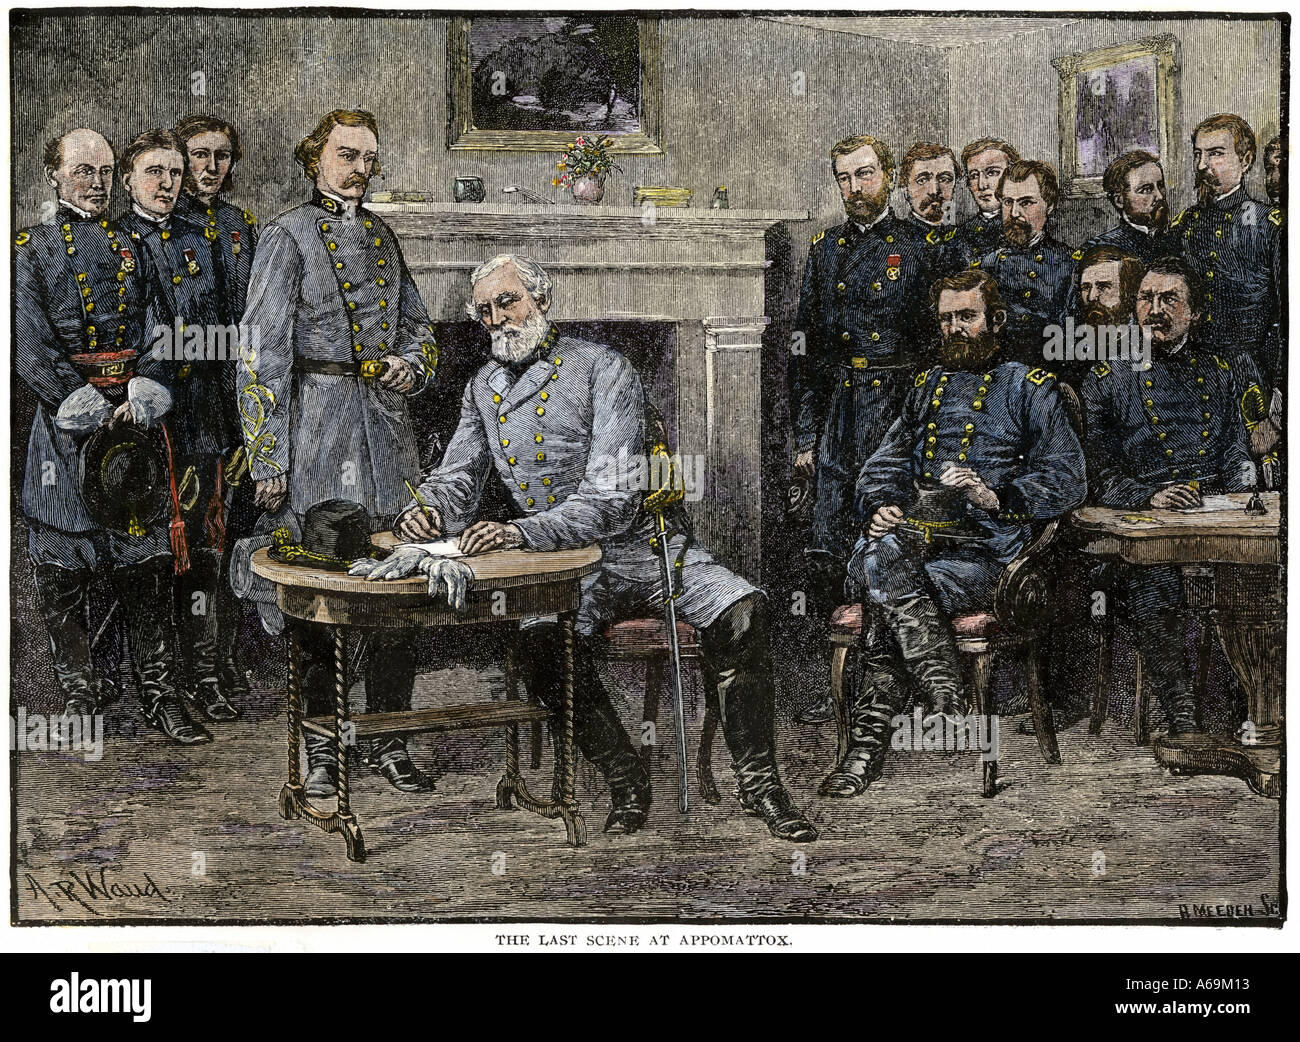 a biography of robert edward lee the general of the confederate army Lee served as a commander in the confederate army during the civil war   born into a famous virginia family on january 19, 1807, robert e lee  and  virginia and as commander of the light batteries, with general scott,.